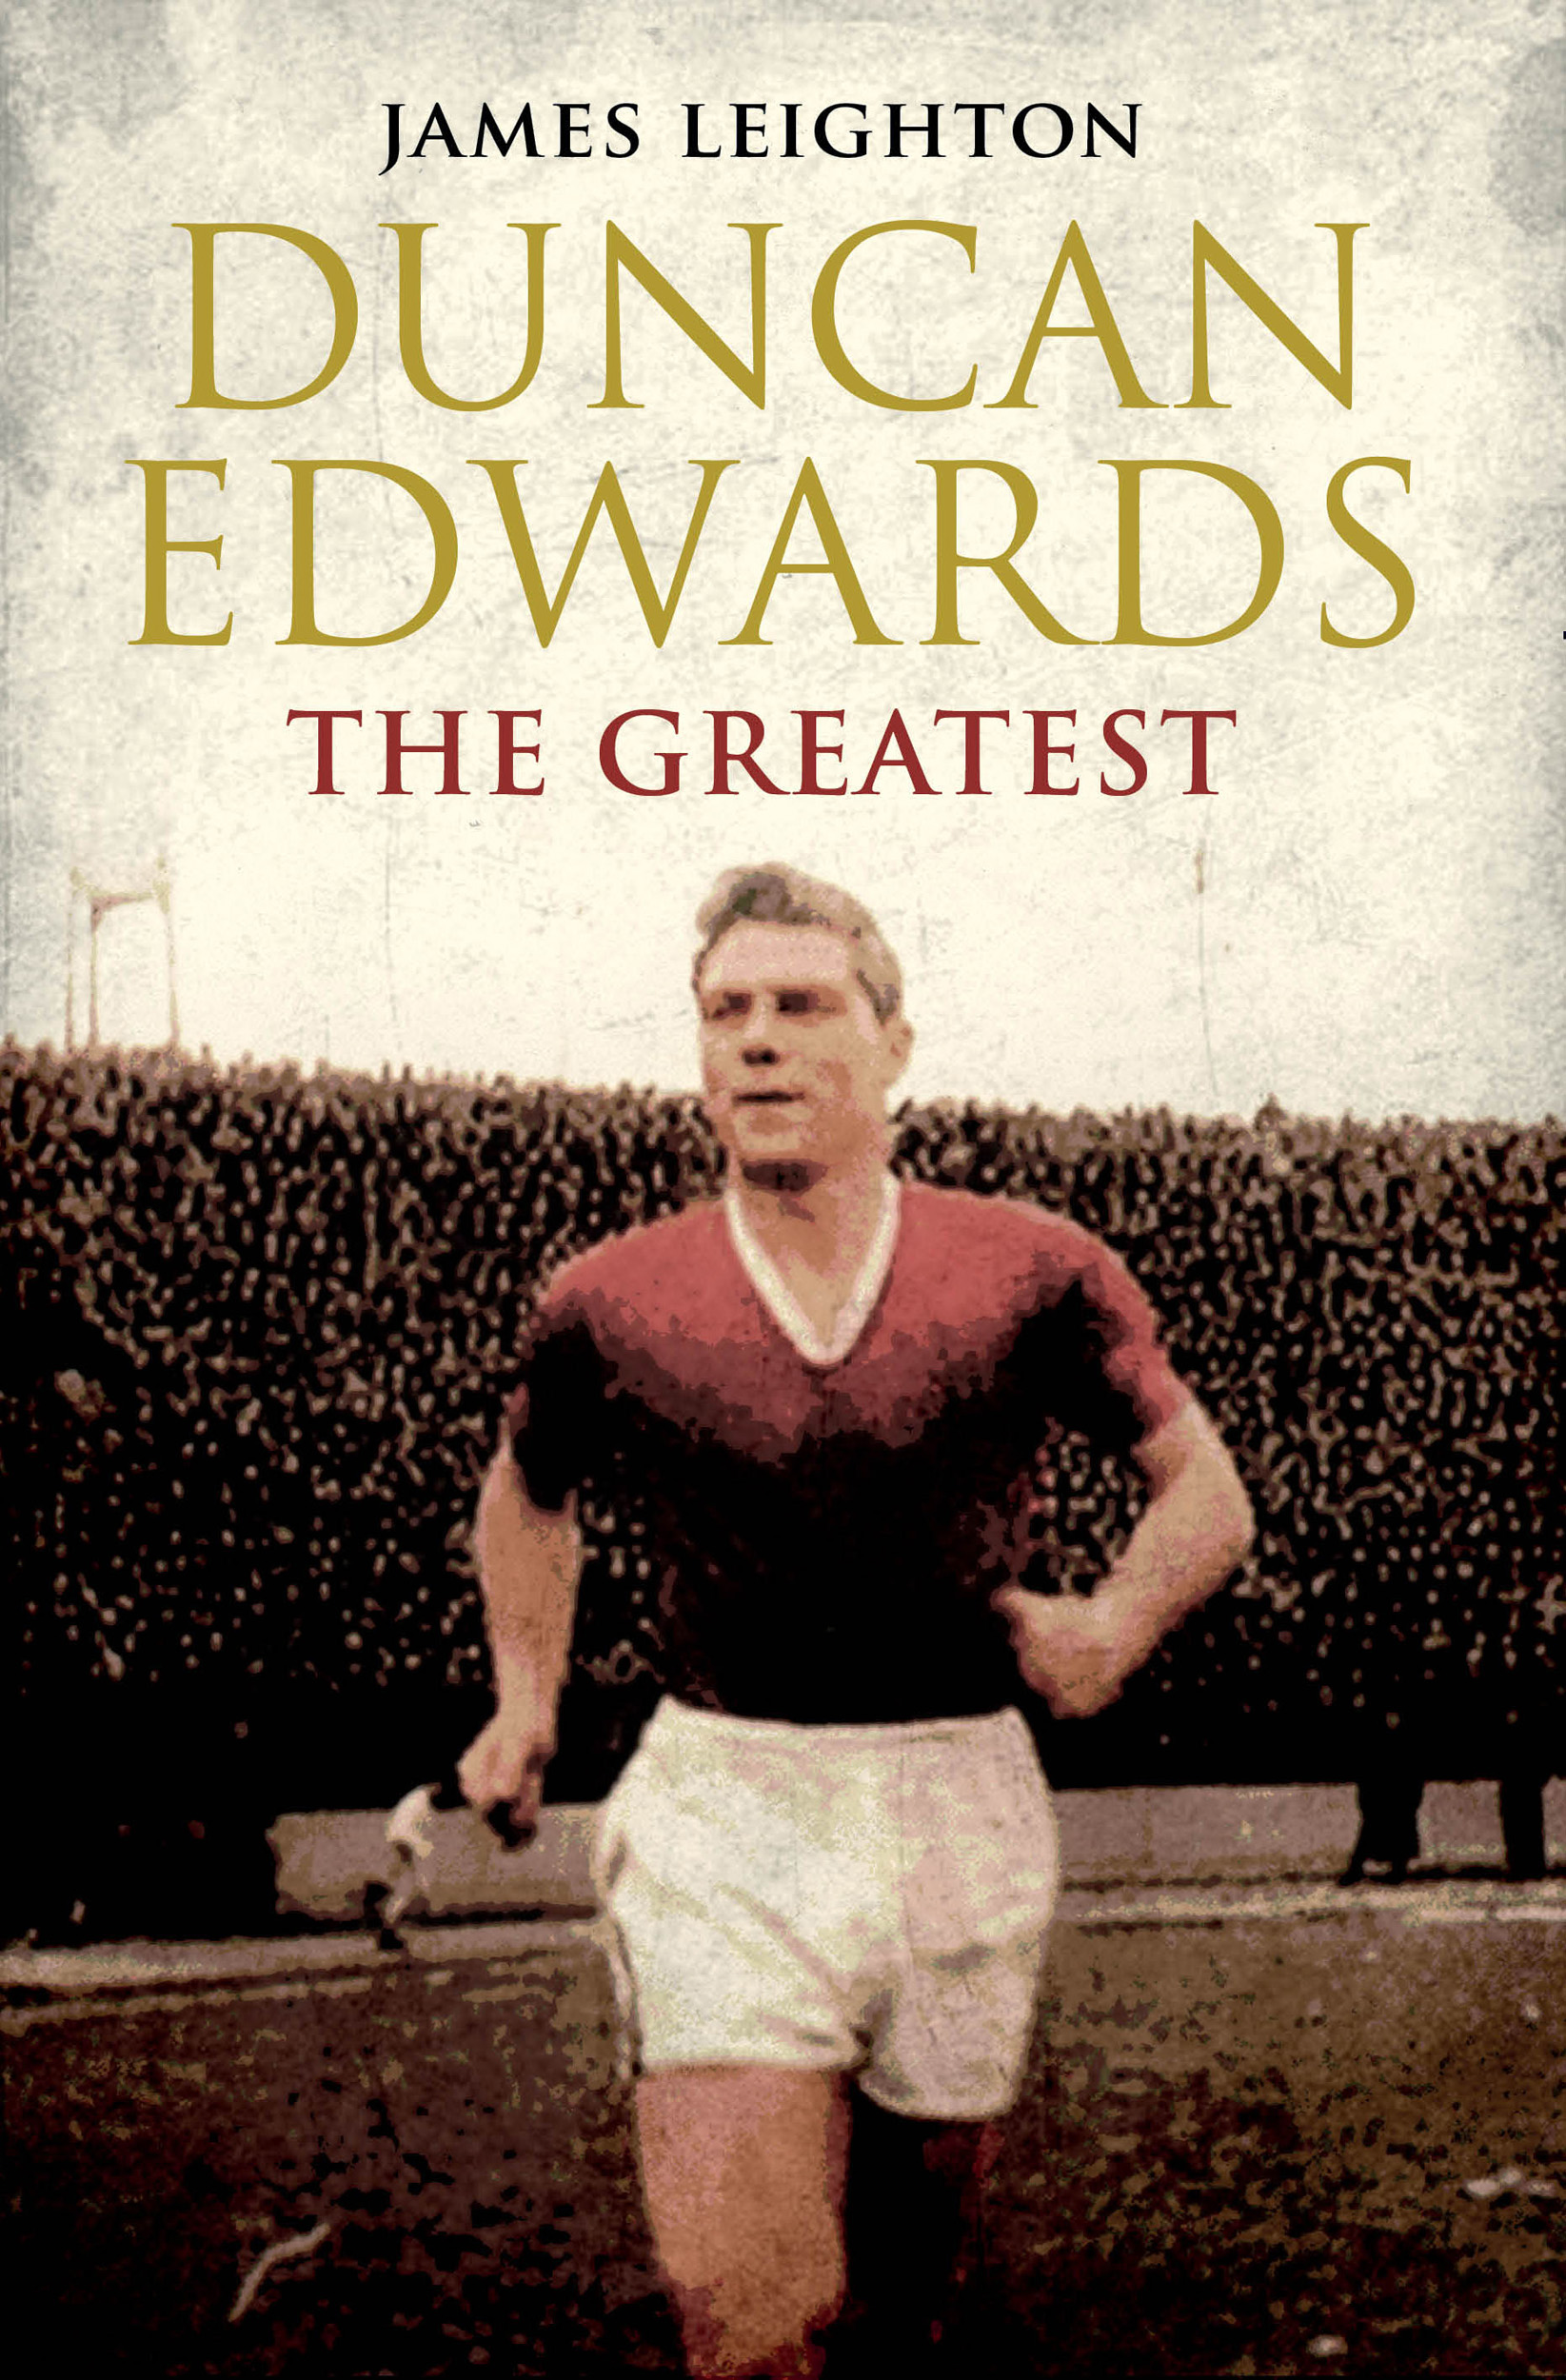 Book Cover Image (jpg): Duncan Edwards: The Greatest